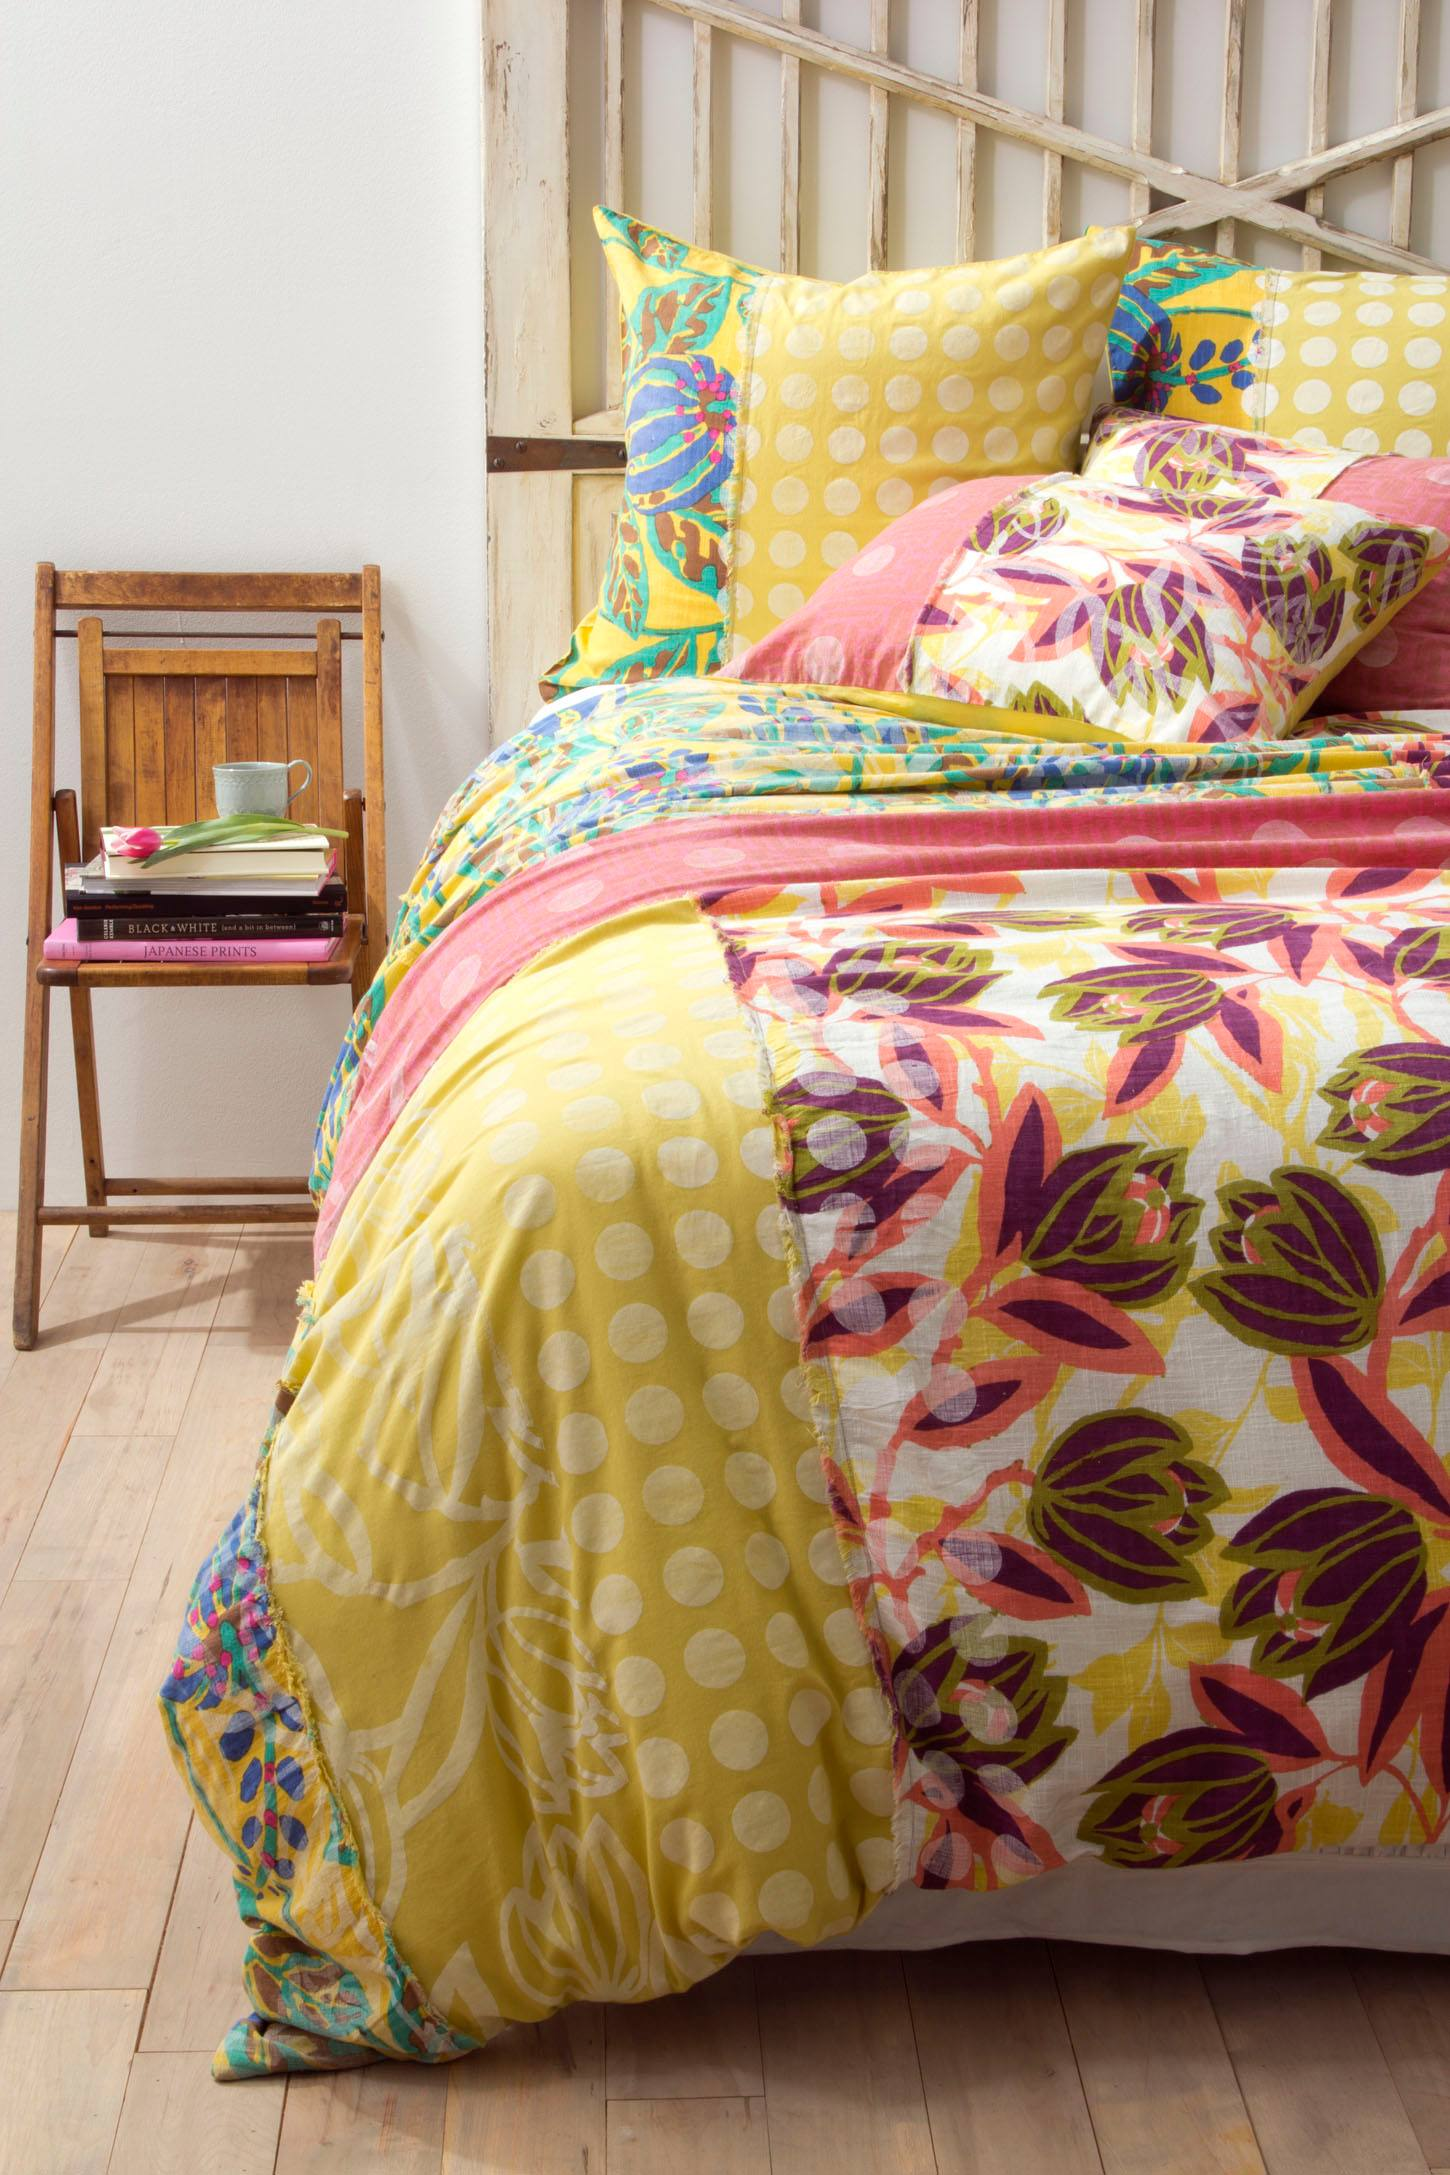 Anthropologie bedding - Anthropologie Bedding 51